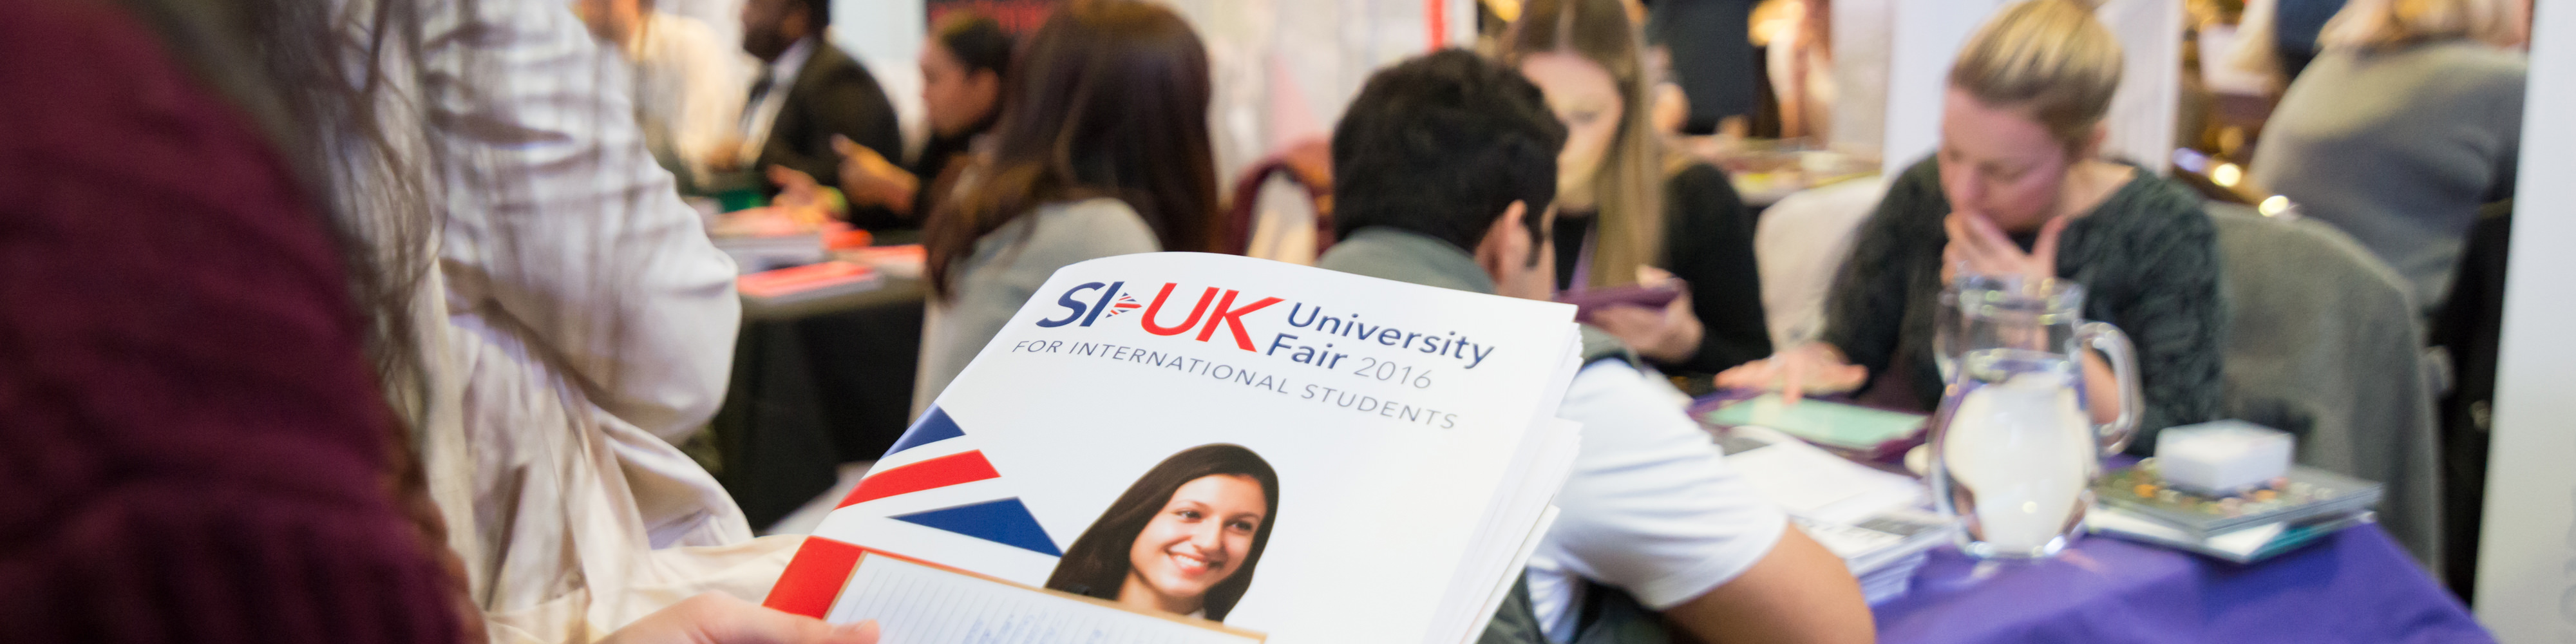 Manchester University Fair Registration | UK University Fair Manchester